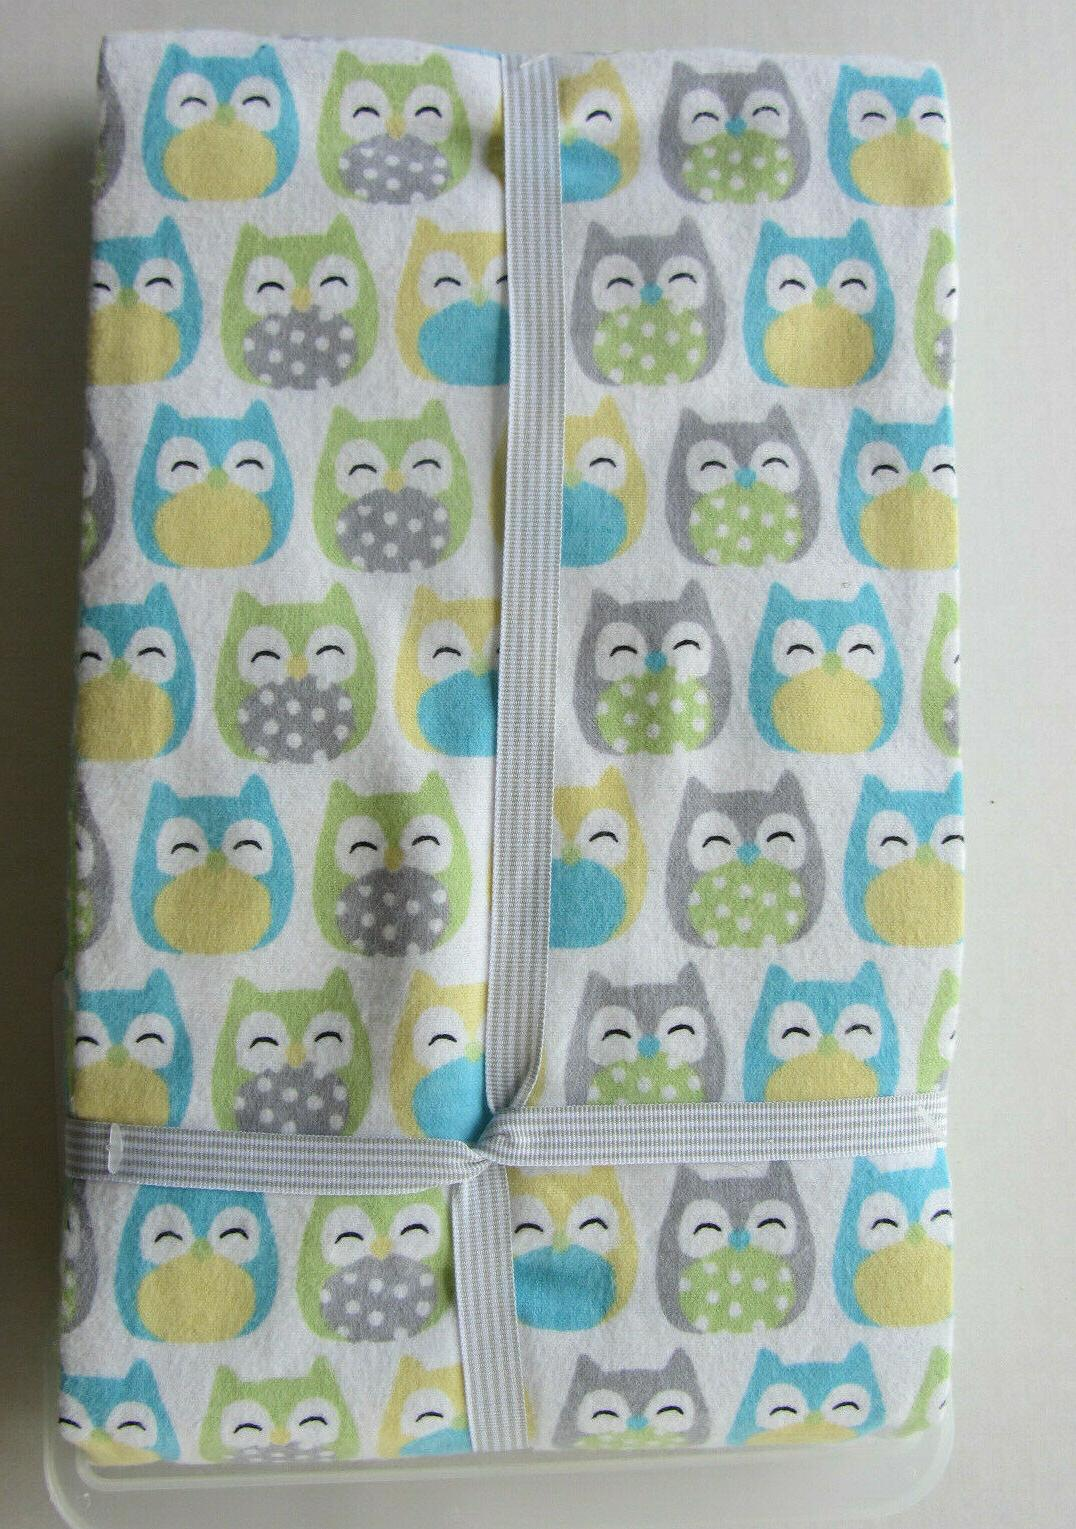 NWT Carter's Owl Flannel 4 Pack Receiving Blankets Blue